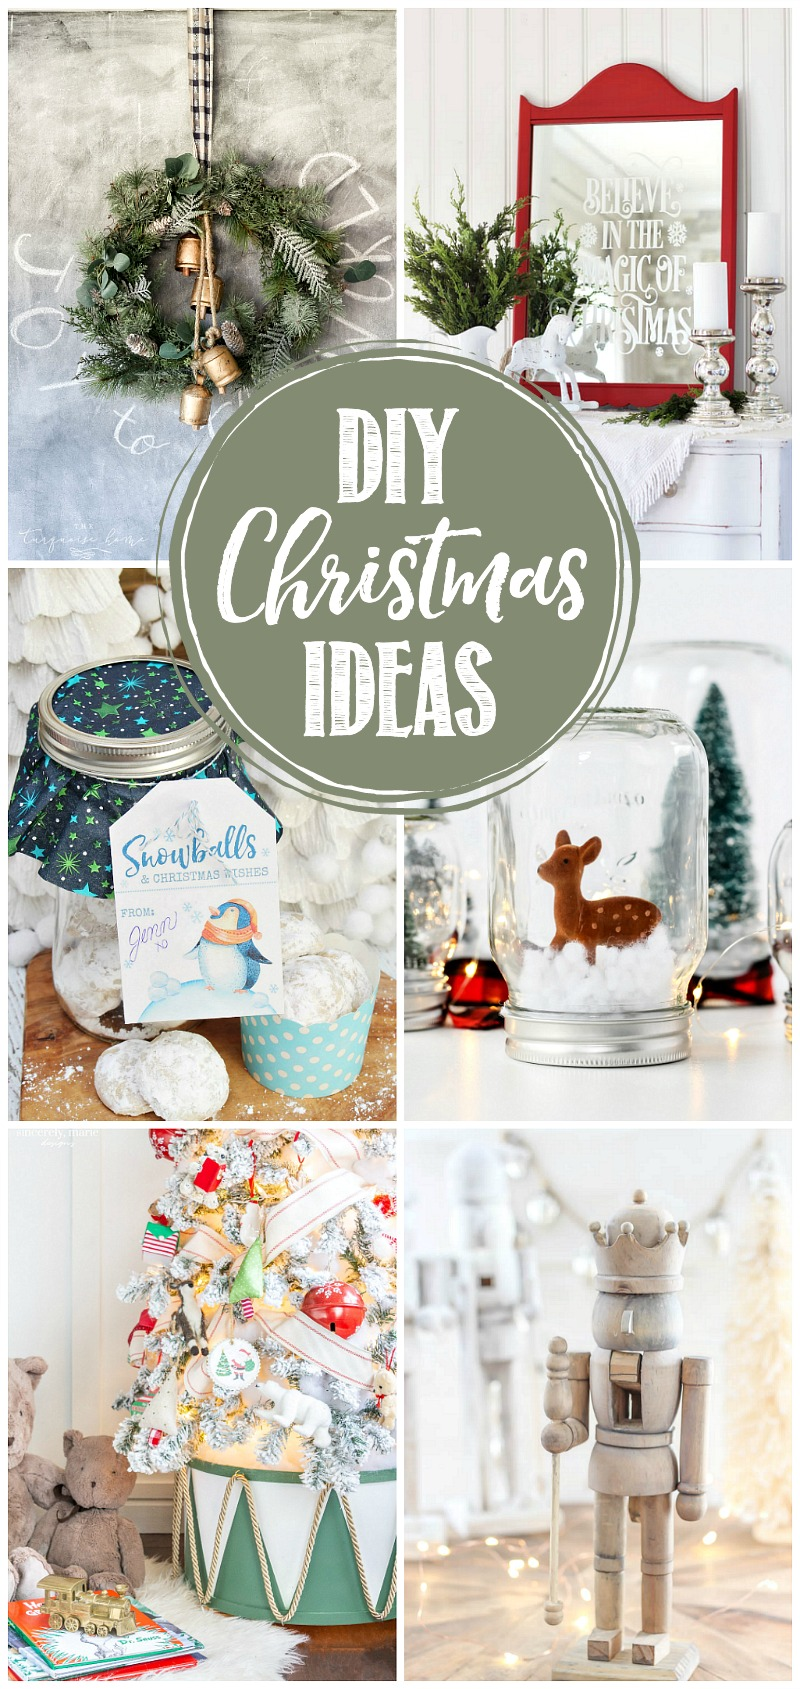 Collection of DIY Christmas ideas.